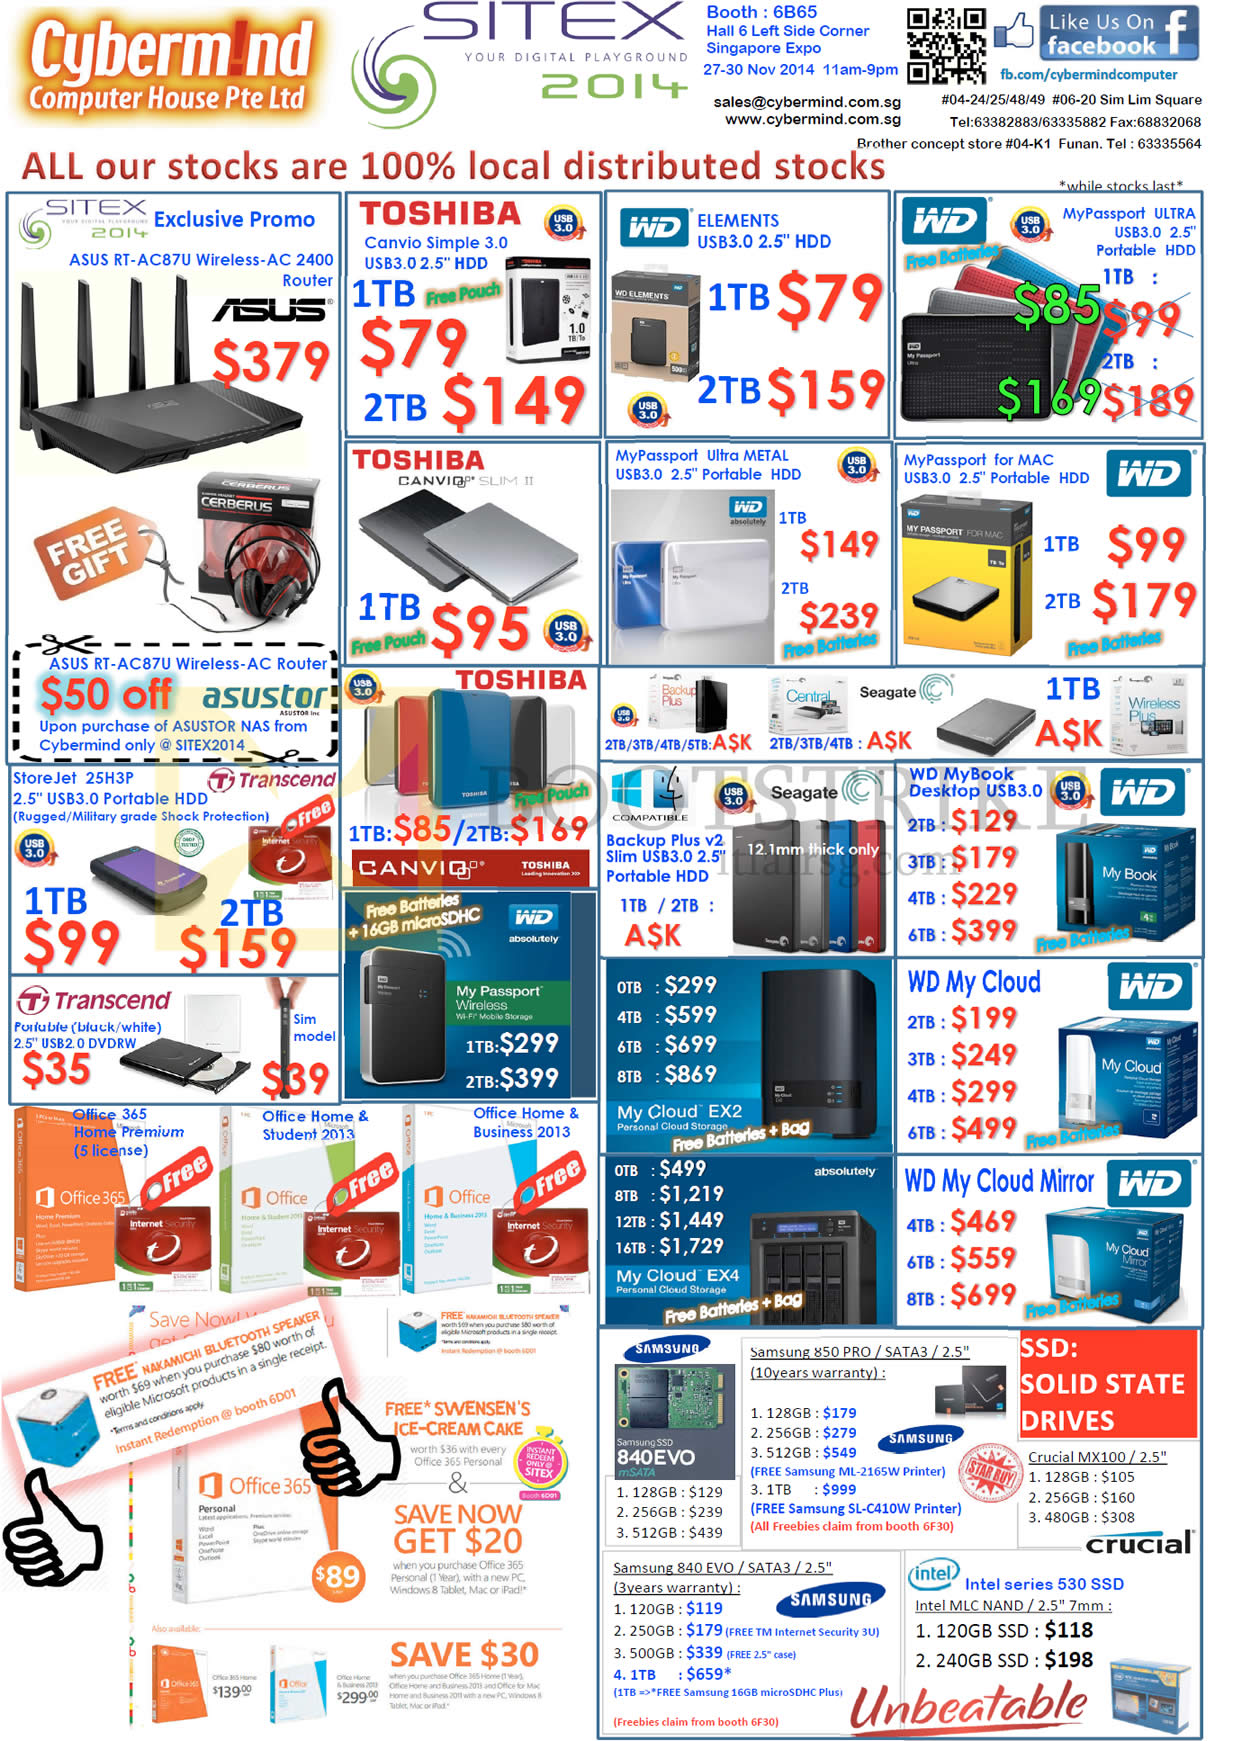 SITEX 2014 price list image brochure of Cybermind External Storage Drives Toshiba WD, Passport, My Cloud, Samsung EVO SSD, Crucial, Office 365, ASUS RT-AC87U Router